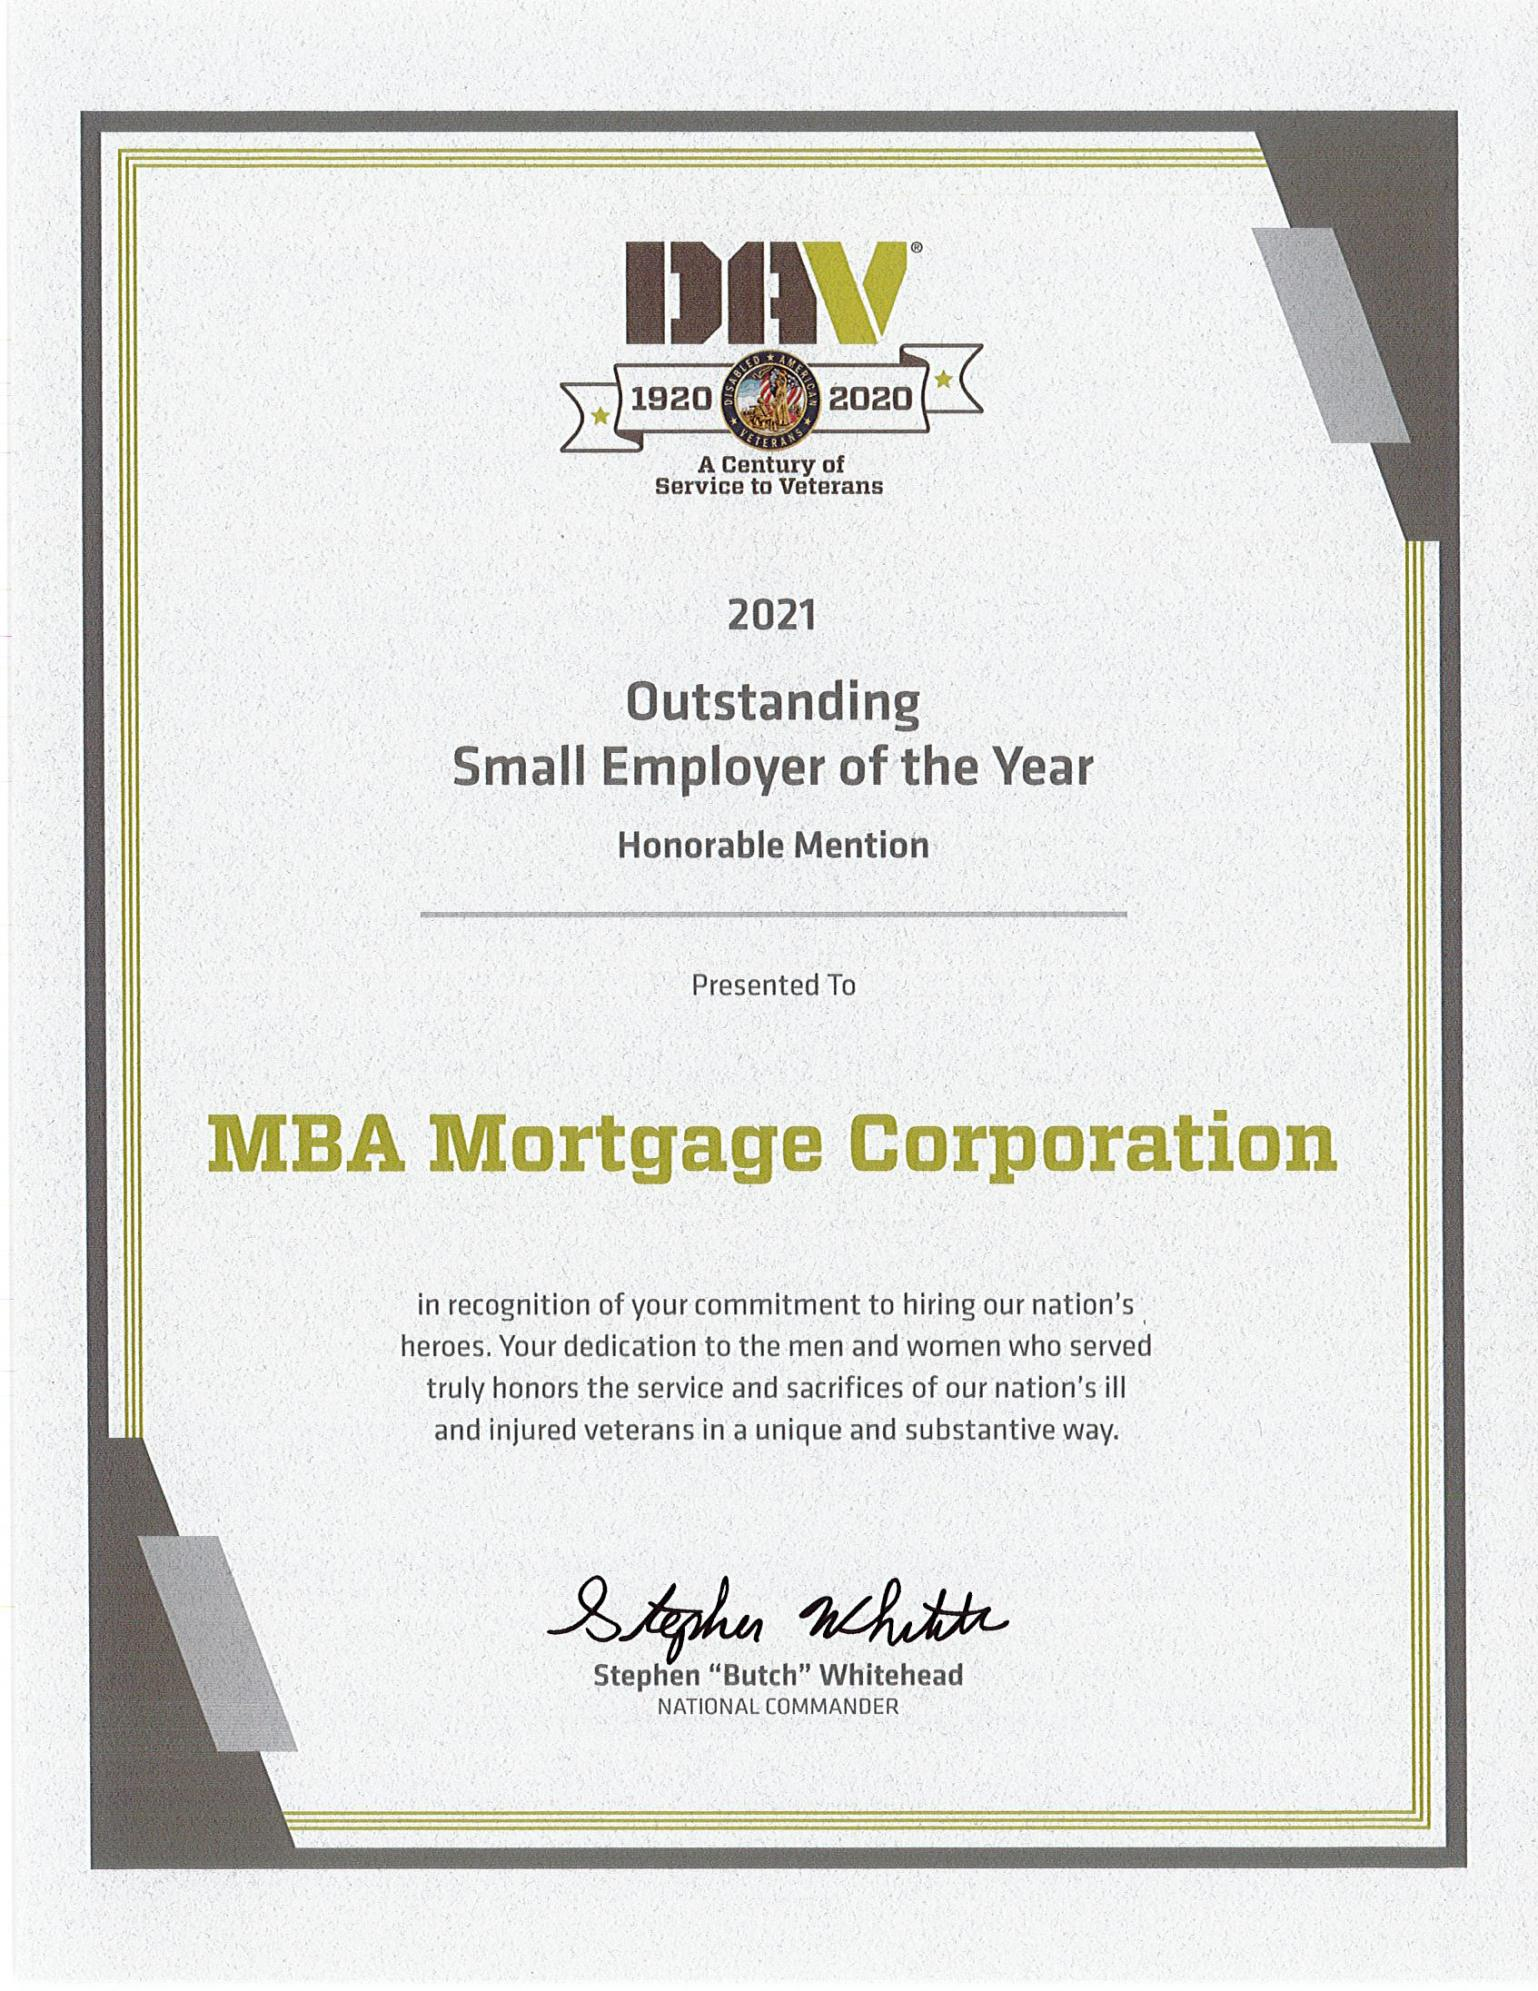 MBA Mortgage DAV Honorable Mention Award for 2021